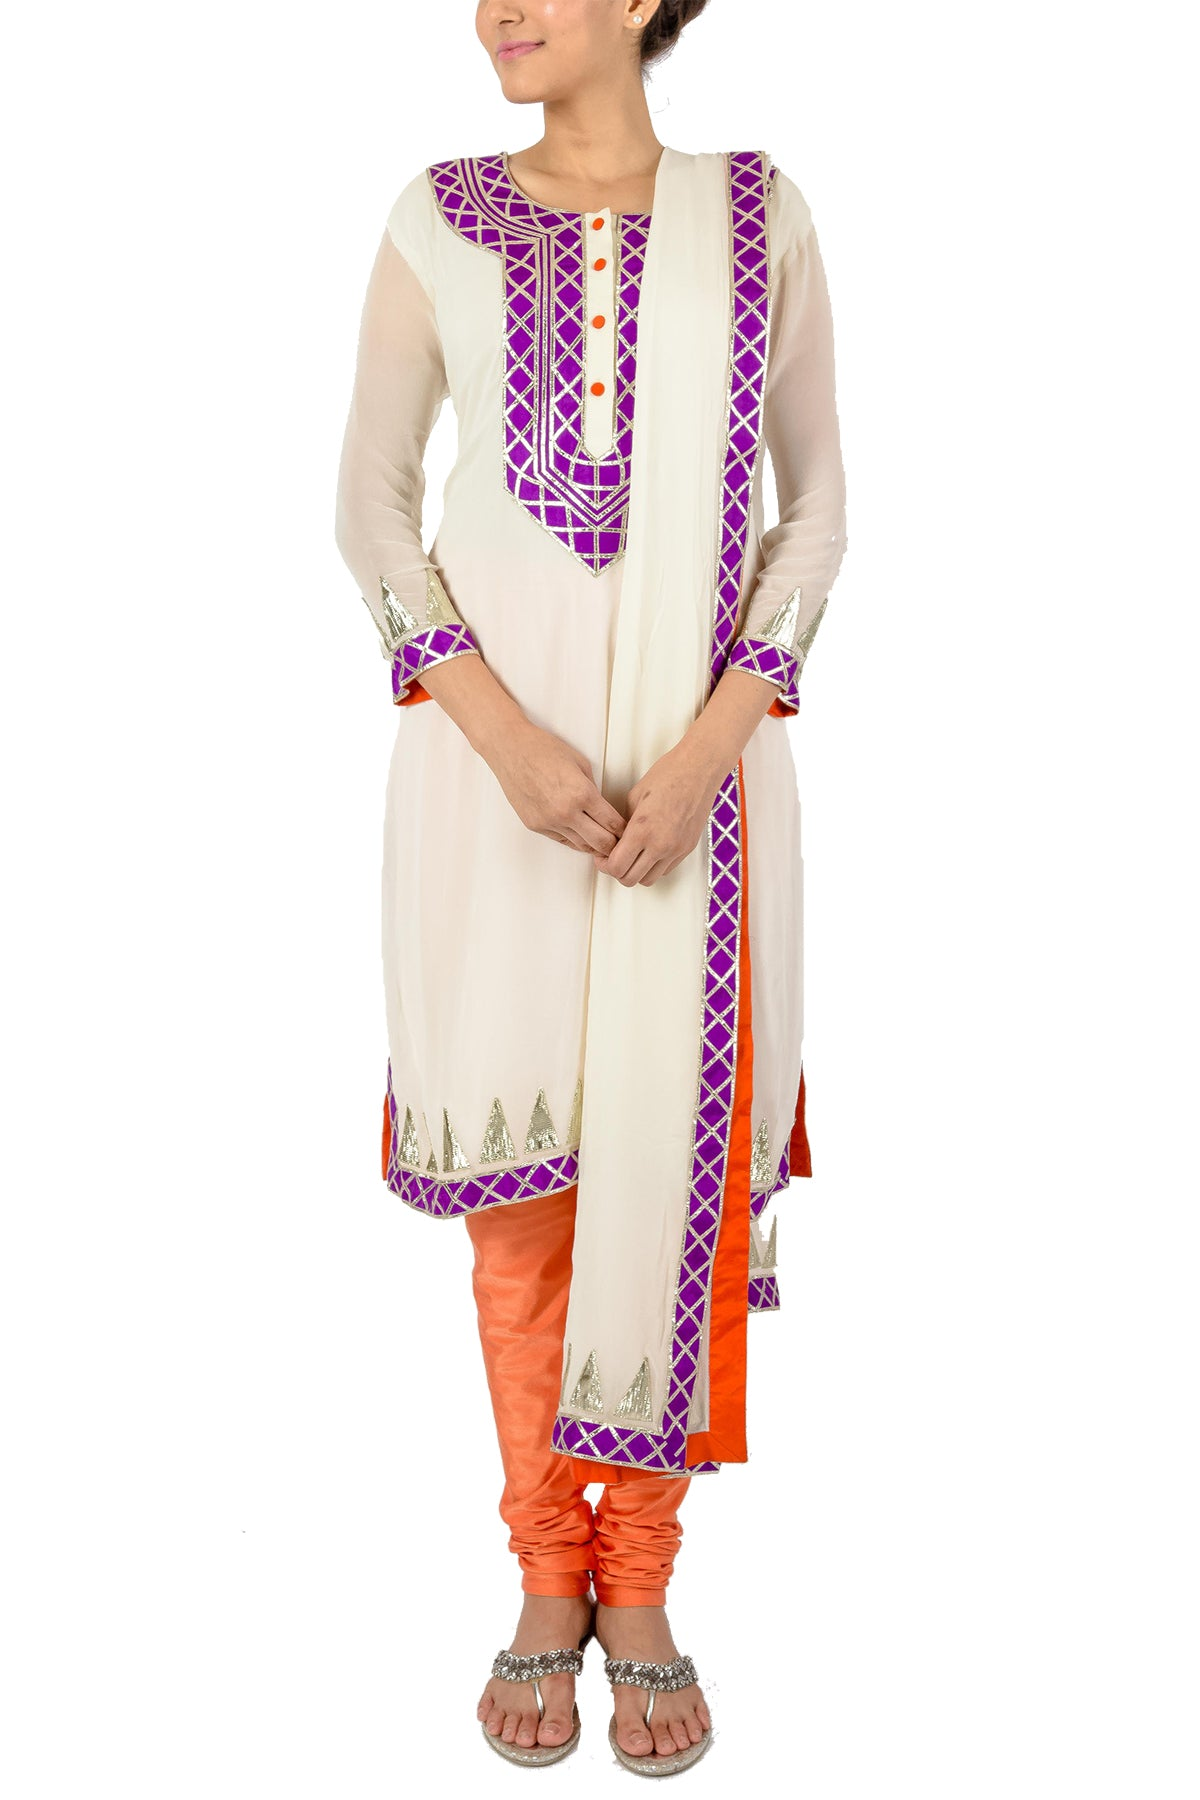 Crafted with utmost art for a pristine heart - this white georgette kurta set is lined with silver gota pati and given a festive edge with purple embroidery and a bright orange churidar.